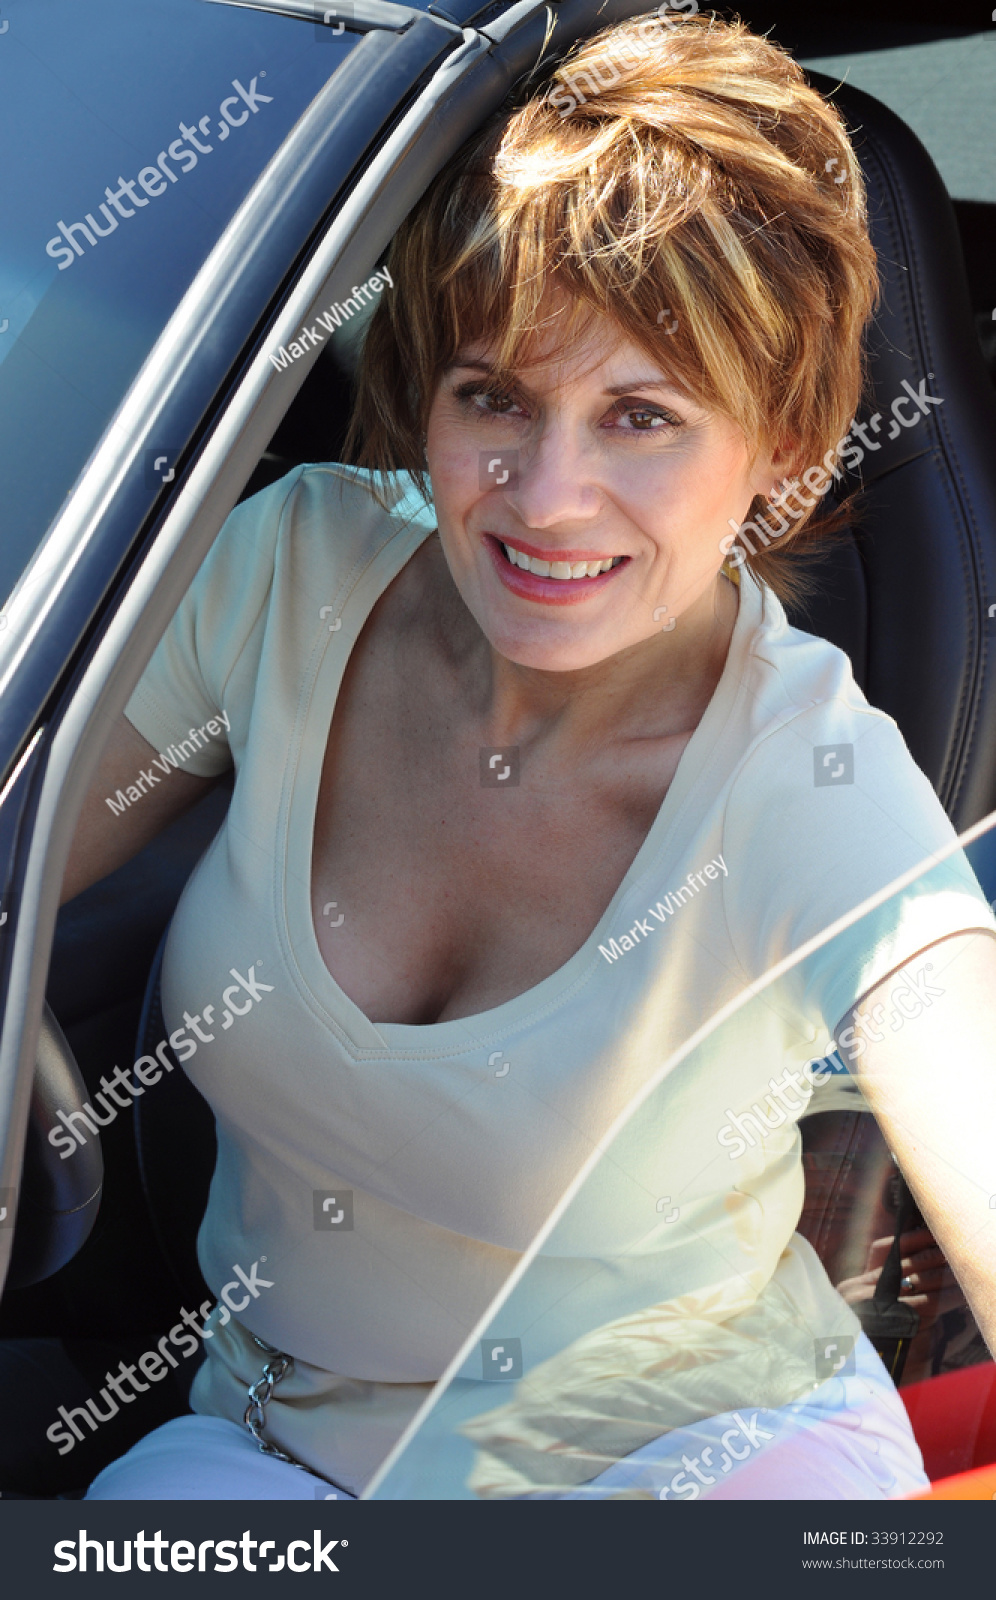 Attractive Woman in her Sports Car